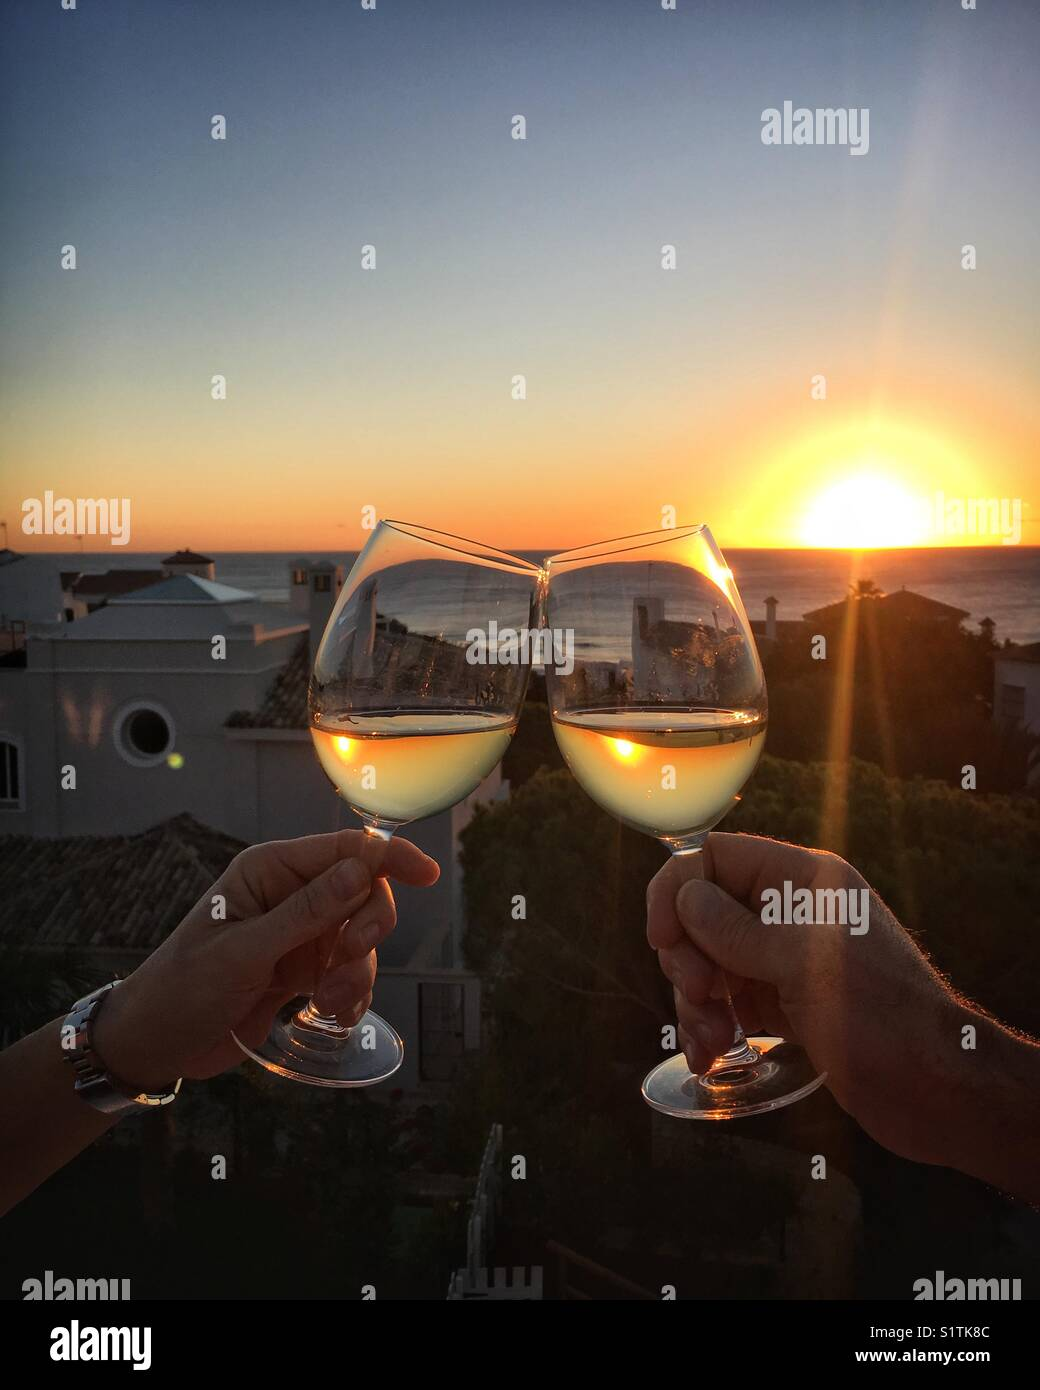 Two wine glasses clinking together at sunset. Cheers! - Stock Image